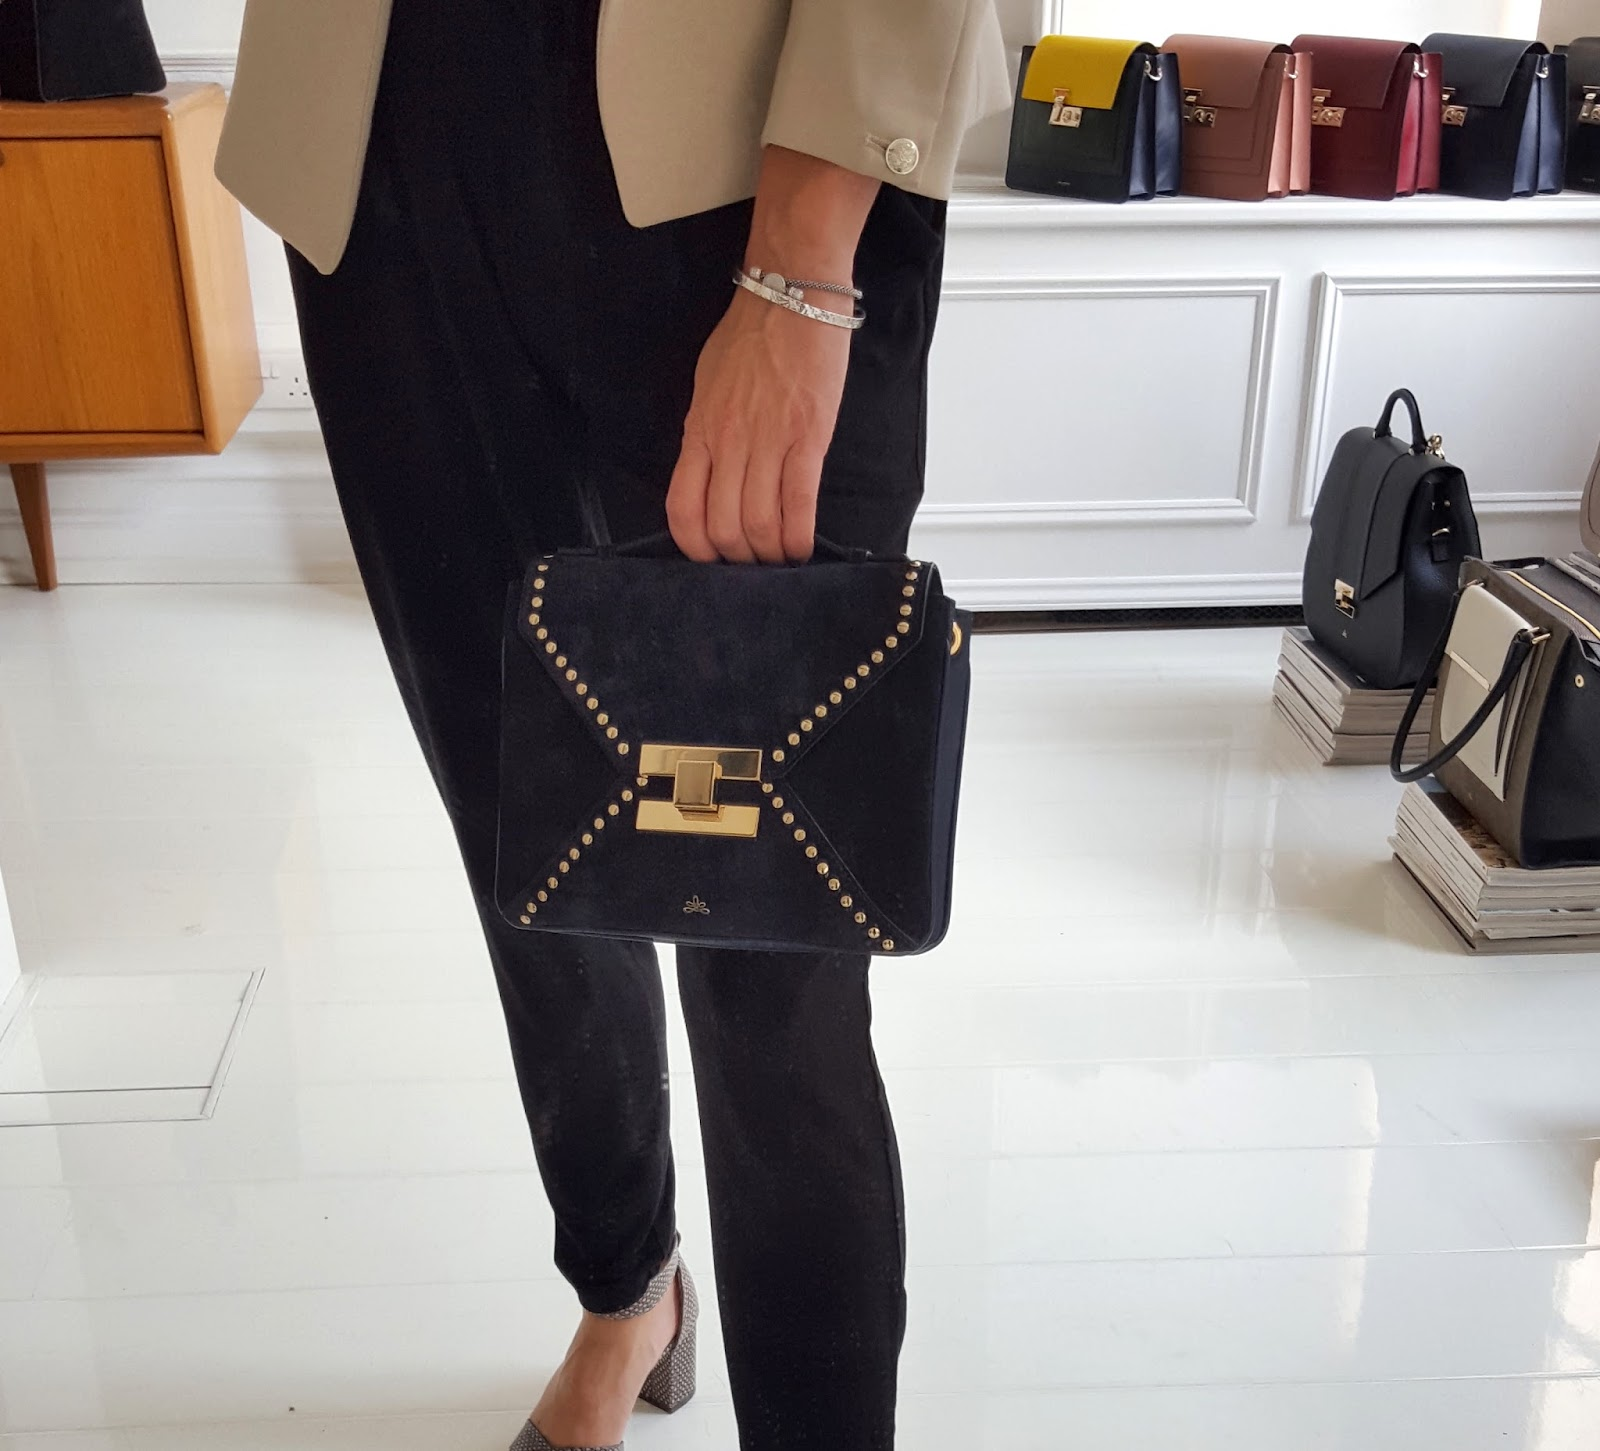 Mini Berlin demellier well priced bags with a touch of luxe i won t wear